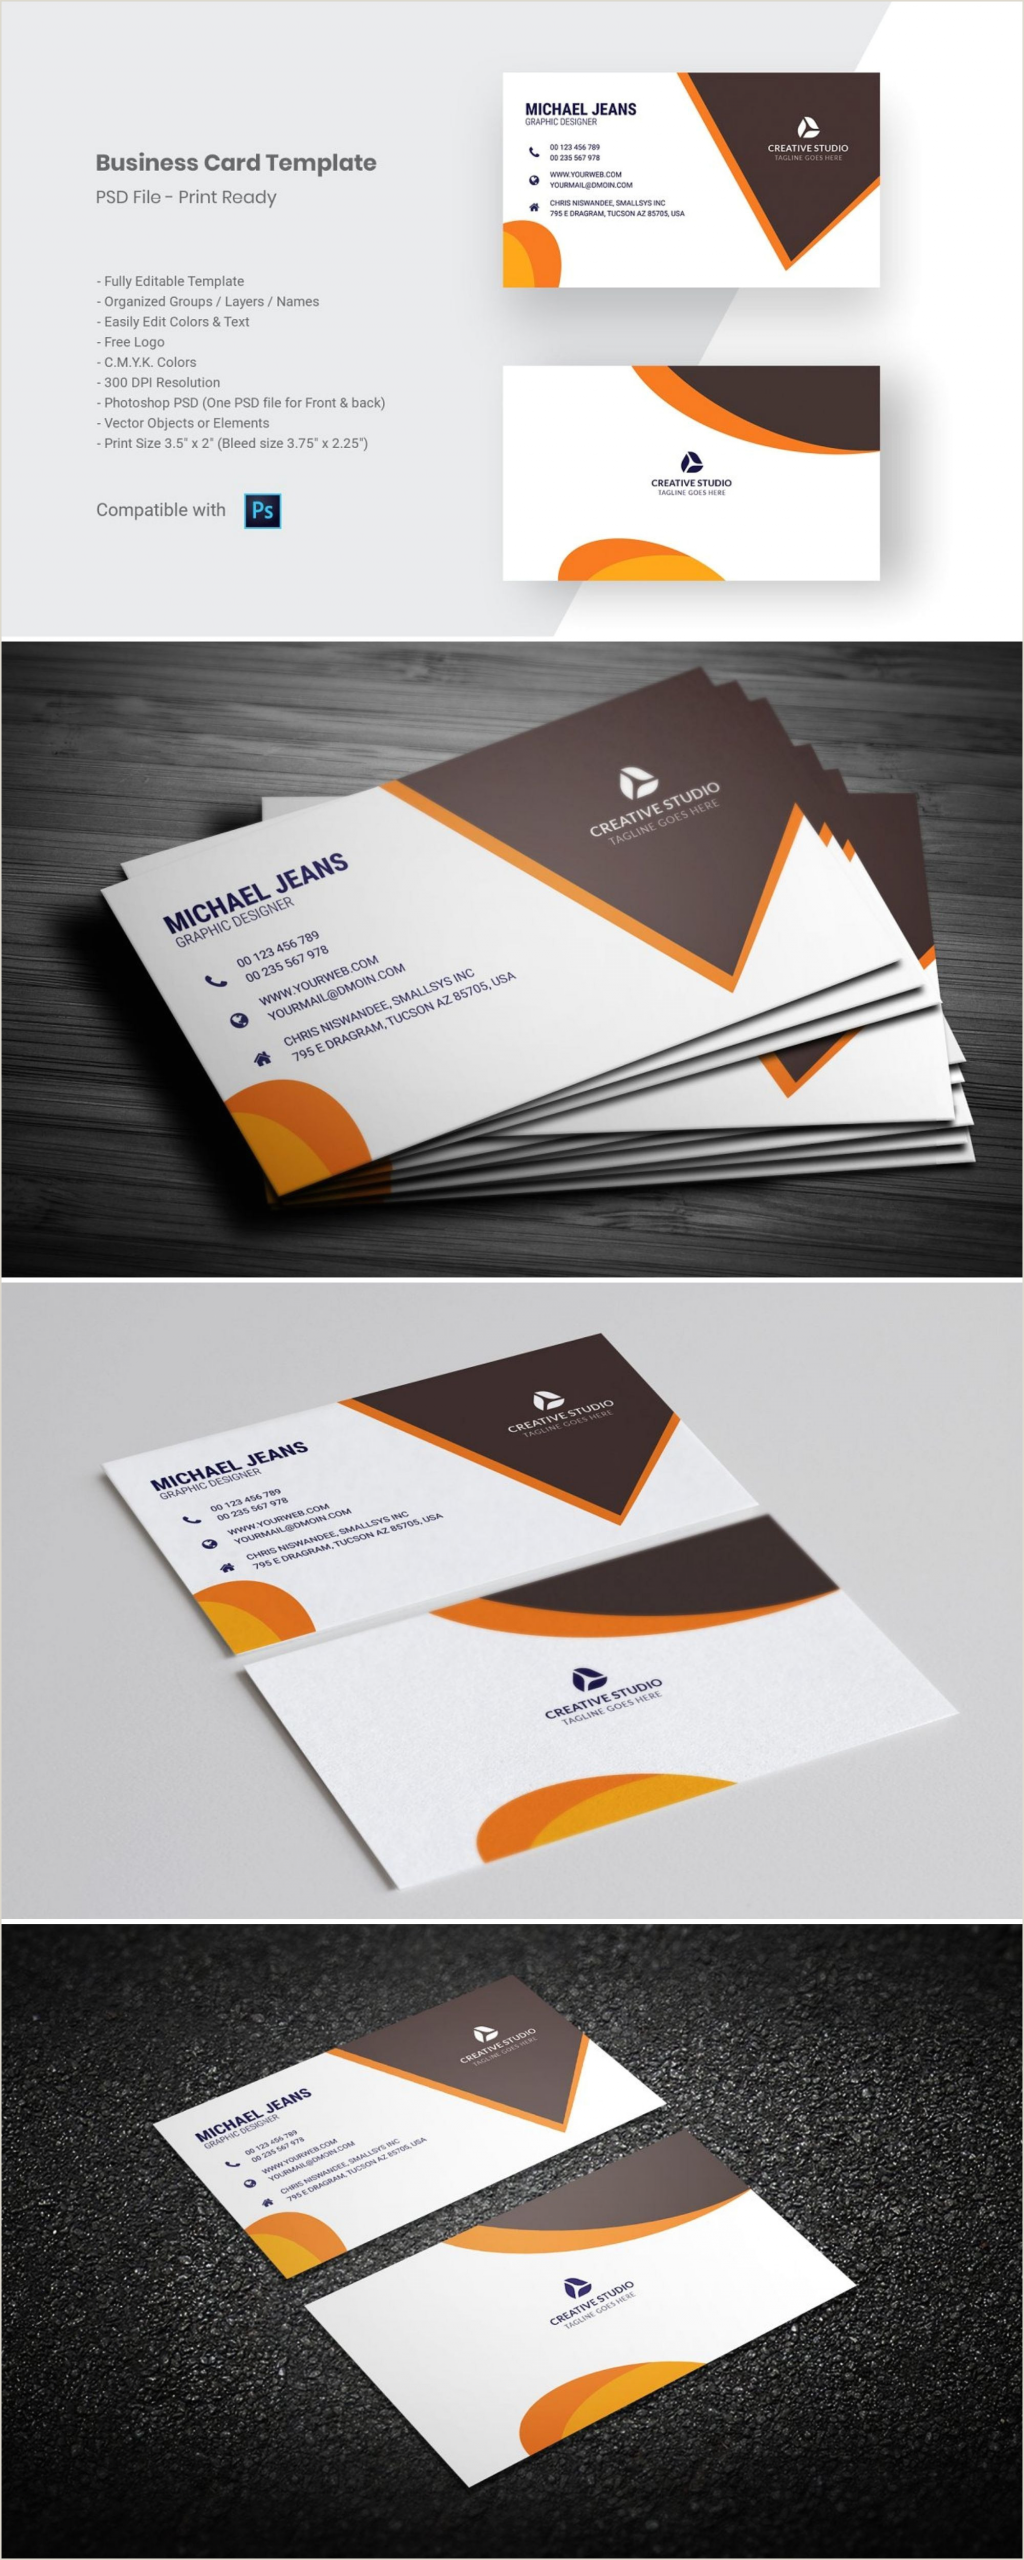 Complimentary Cards Designs Modern Business Card Template